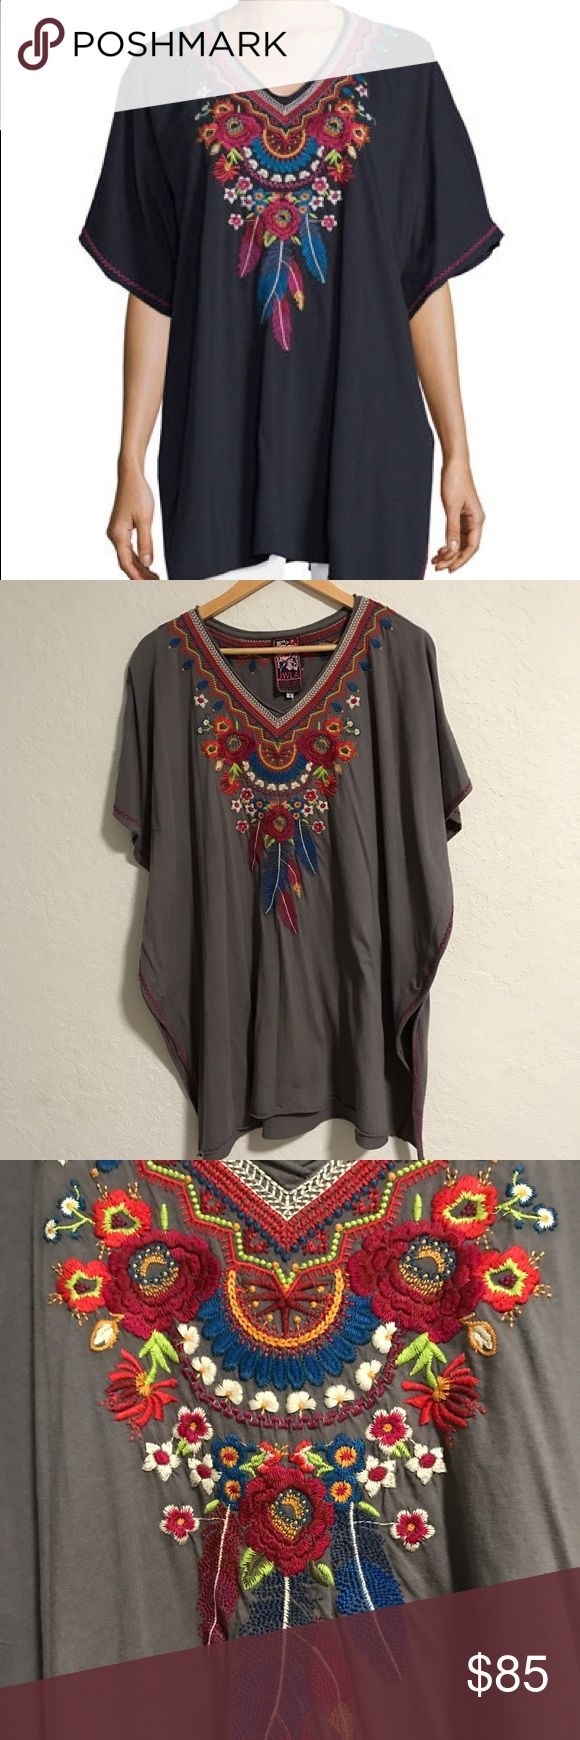 Johnny Was LA JWLA Eeran Tunic NWT JWLA Tunic Top Poncho in size small. 100% Cotton so extremely comfortable and soft. Like many JWLA this is oversized/run bigger so it can fit a size Medium and large. Color is called Dusty Mountain. Beautiful embroidery at the front and at back neckline as well as sides. Absolutely stunning! Please ask all questions prior to purchasing!   Notice*** the first photo is to show it styled and not the color I am selling. I am selling the gray one pictured in…